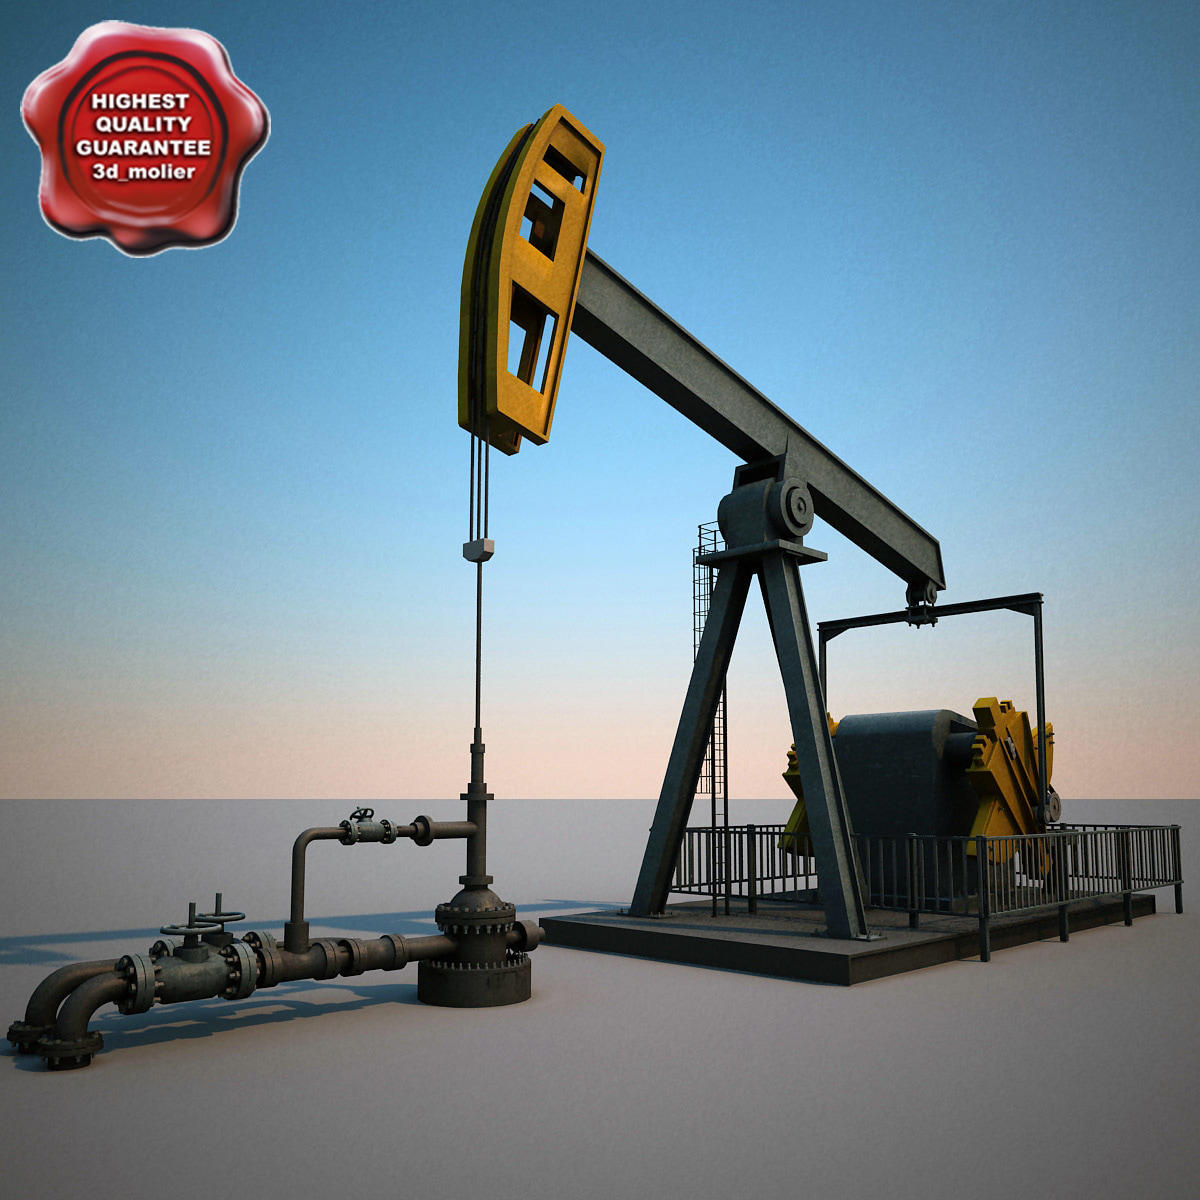 Oil_Pump_Pumpjack_00.jpg